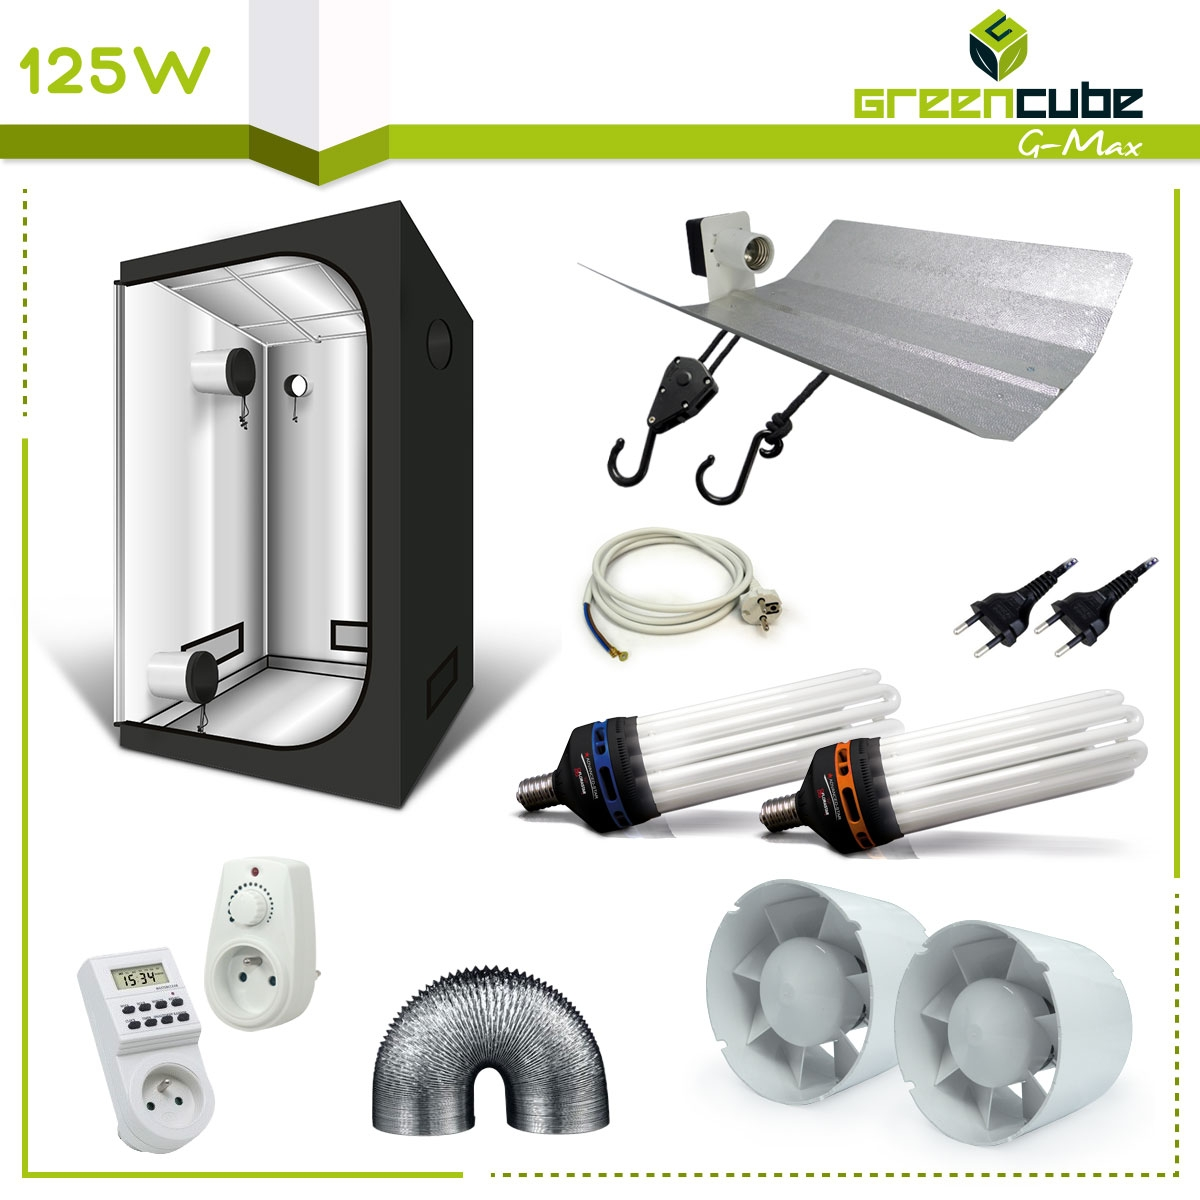 Pack de culture int rieur complet lampe cfl 125w et for Tente de culture interieur